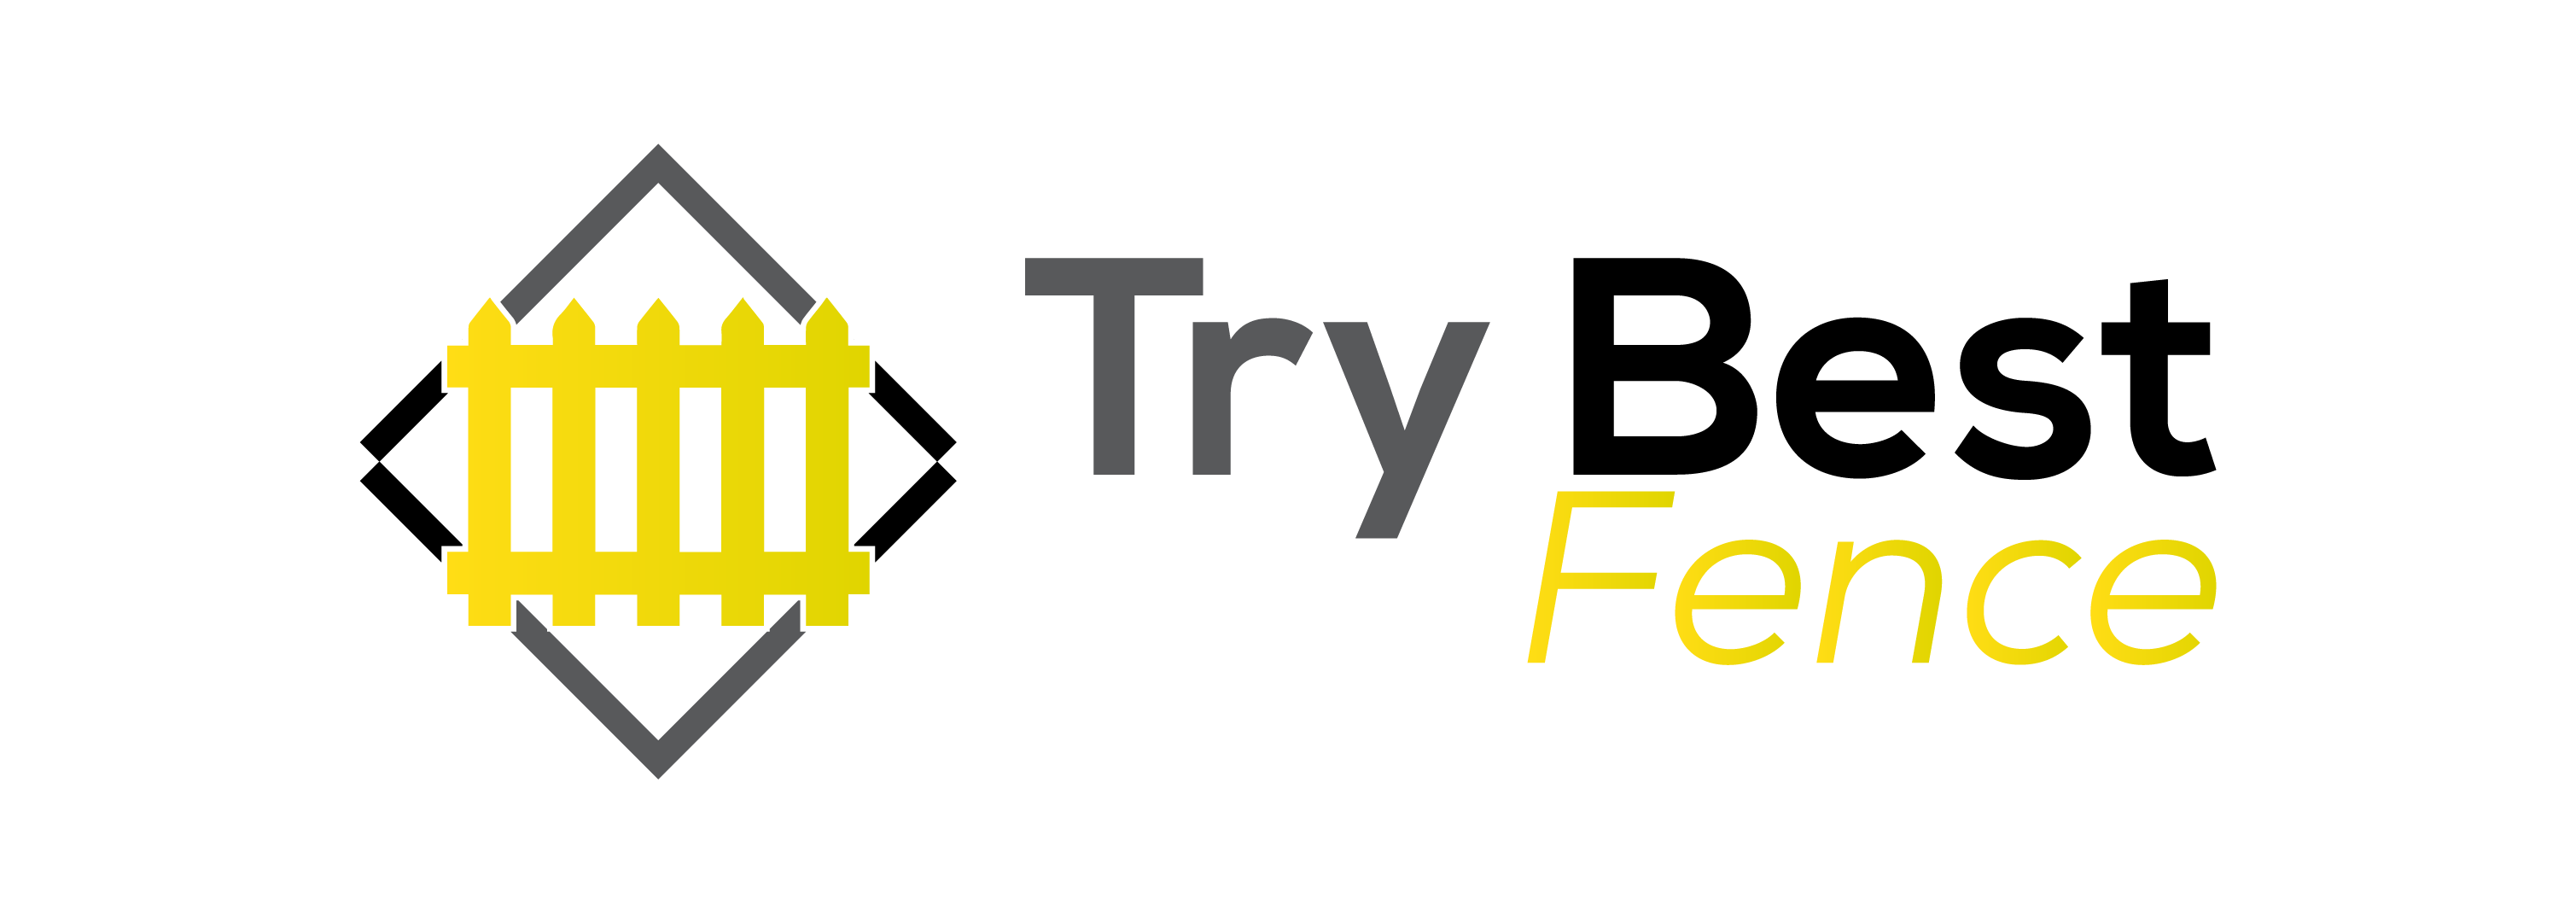 Try Best Fence Retina Logo